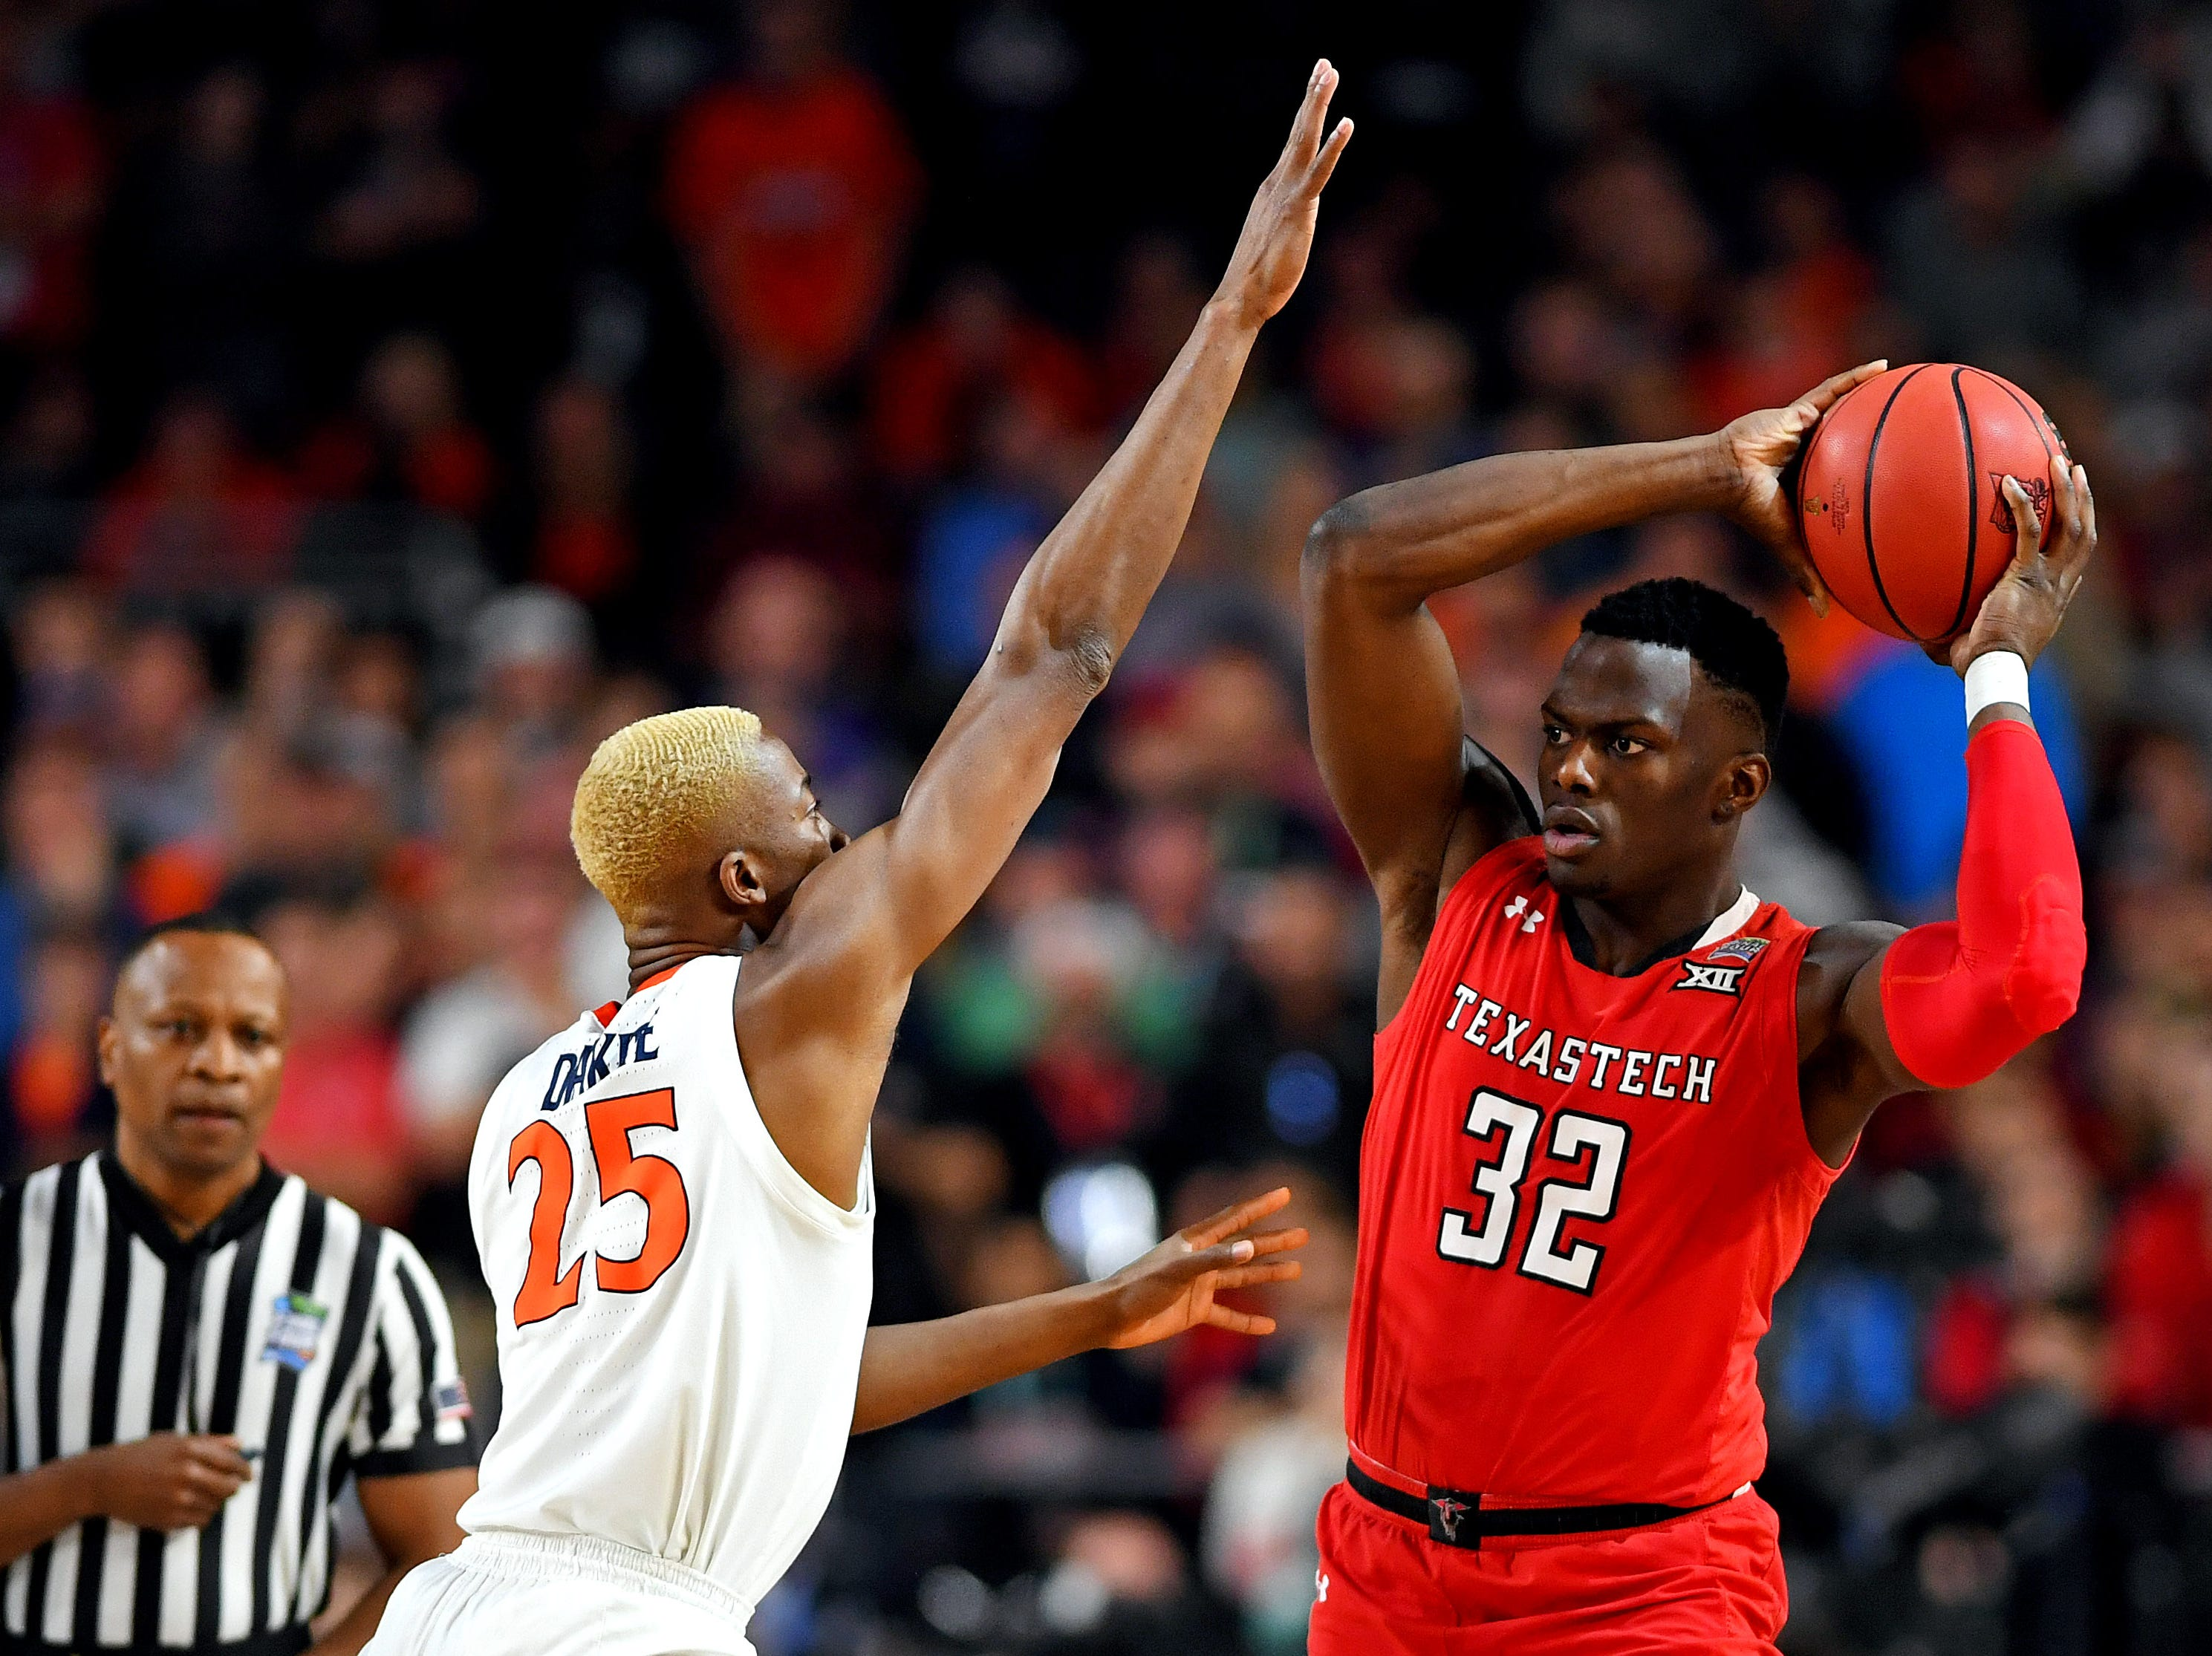 Apr 8, 2019; Minneapolis, MN, USA; Texas Tech Red Raiders center Norense Odiase (32) handles the ball against Virginia Cavaliers forward Mamadi Diakite (25) during the first half in the championship game of the 2019 men's Final Four at US Bank Stadium. Mandatory Credit: Bob Donnan-USA TODAY Sports